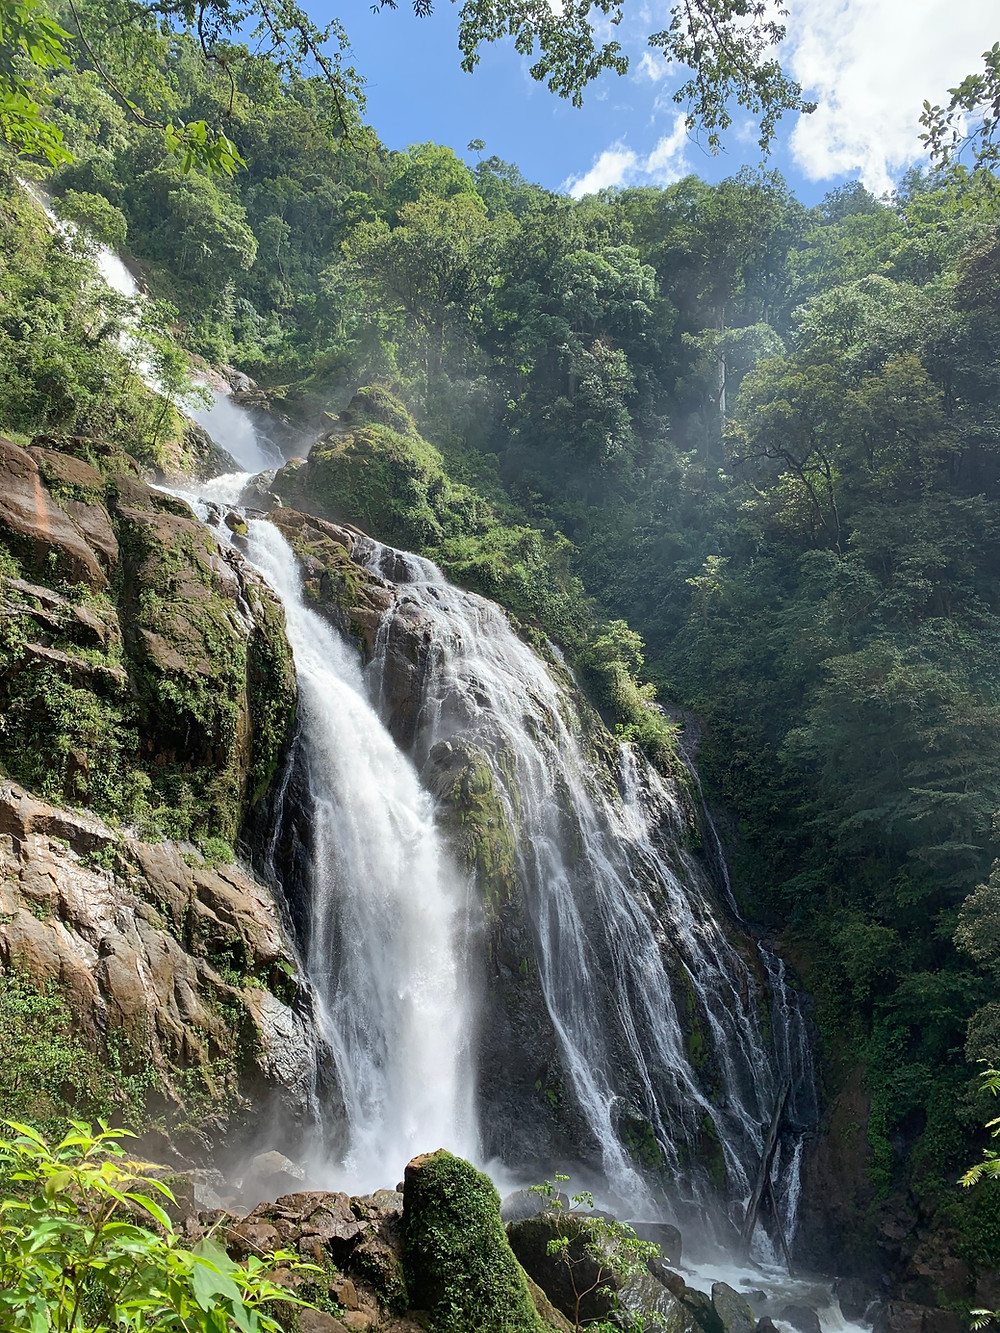 Large waterfall in Costa Rica. Water rushes down the rock face with a powerful force turning the water white. A lush green forest surrounds the falls.